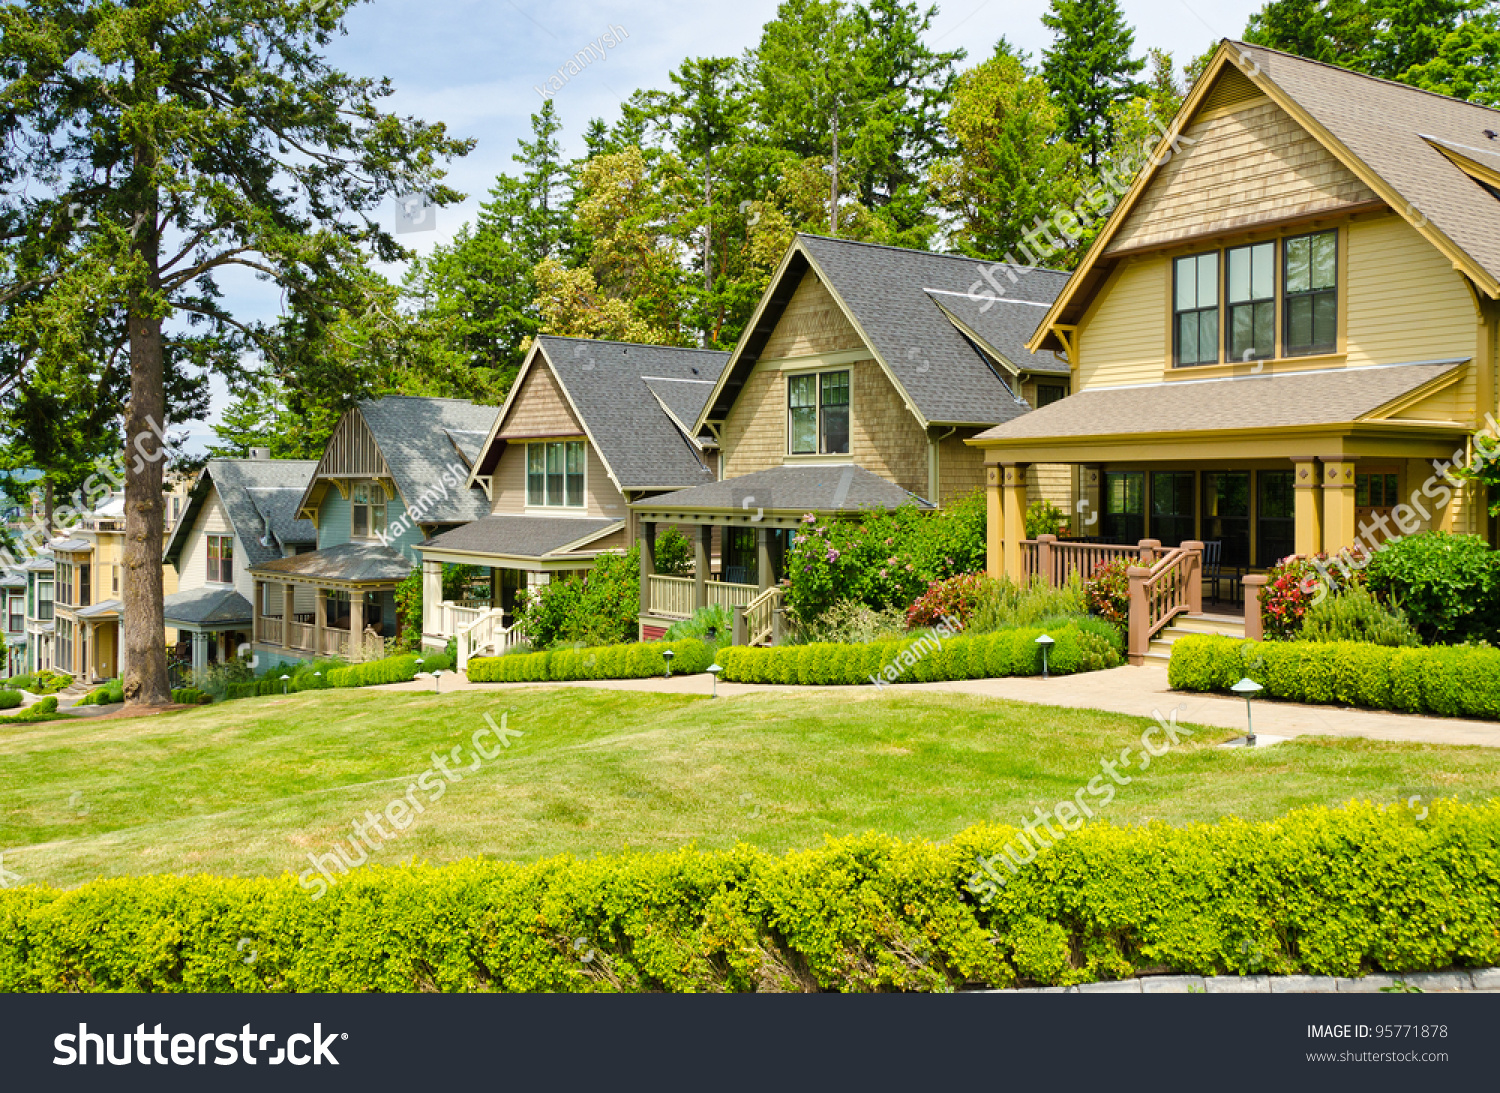 Great neighborhood homes suburb fall north stock photo for Great american homes